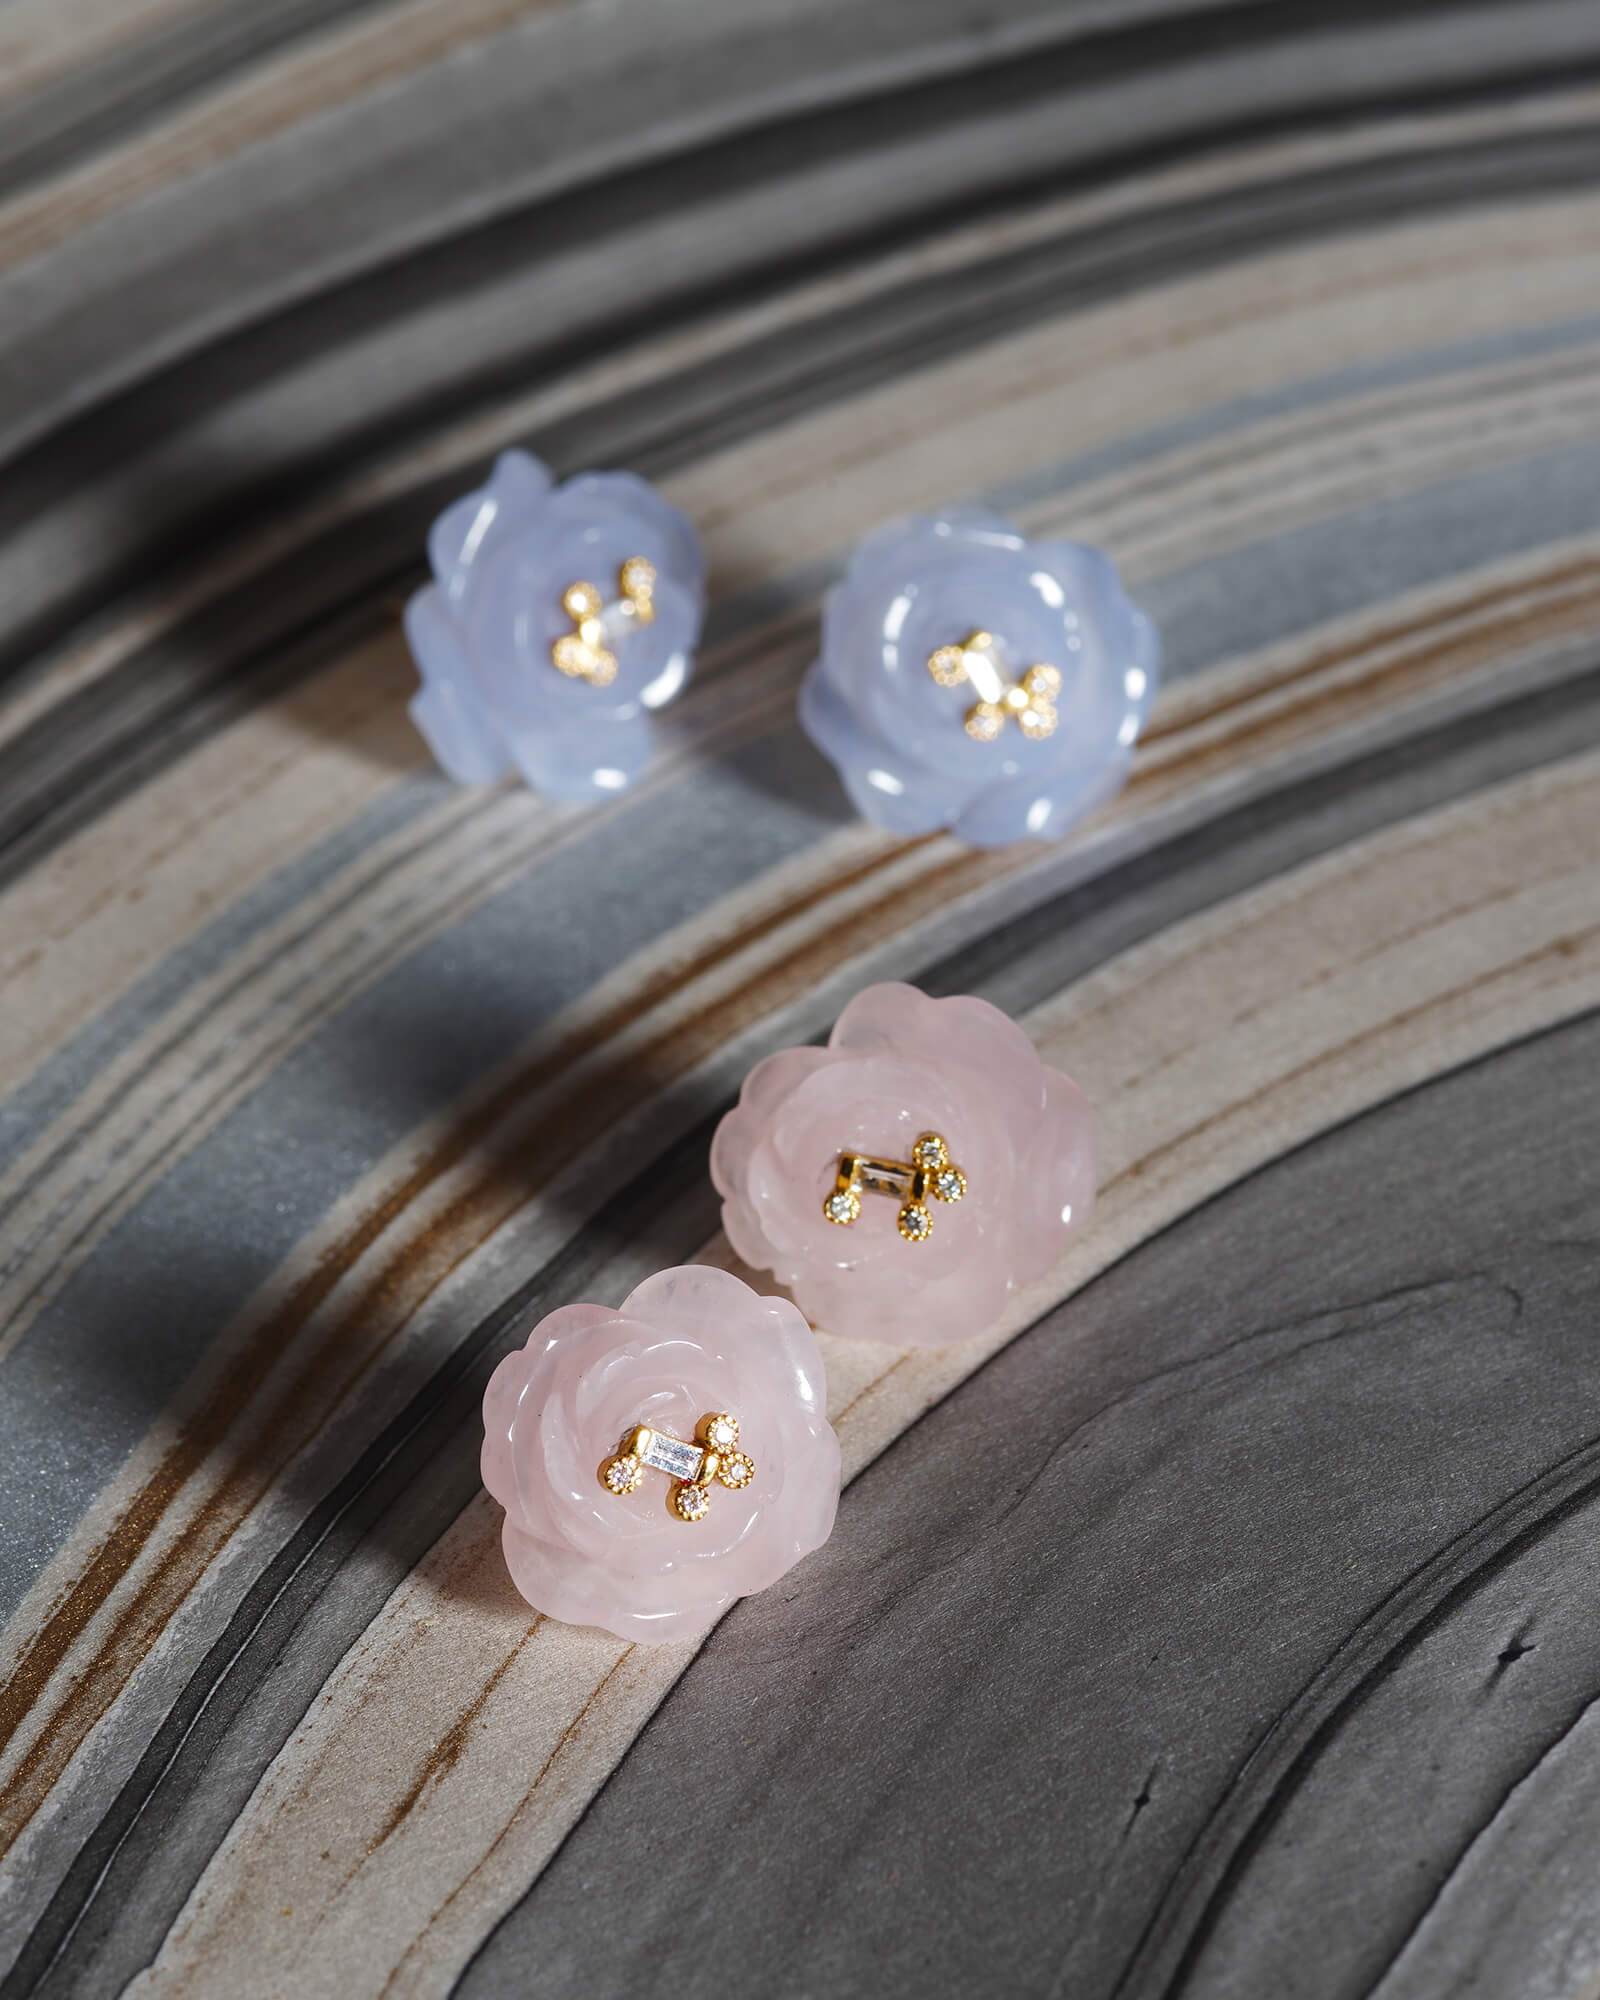 Hand-carved Rose Quartz and Diamond Earrings, $980. product:/affinity-rose-quartz-and-diamond-earrings